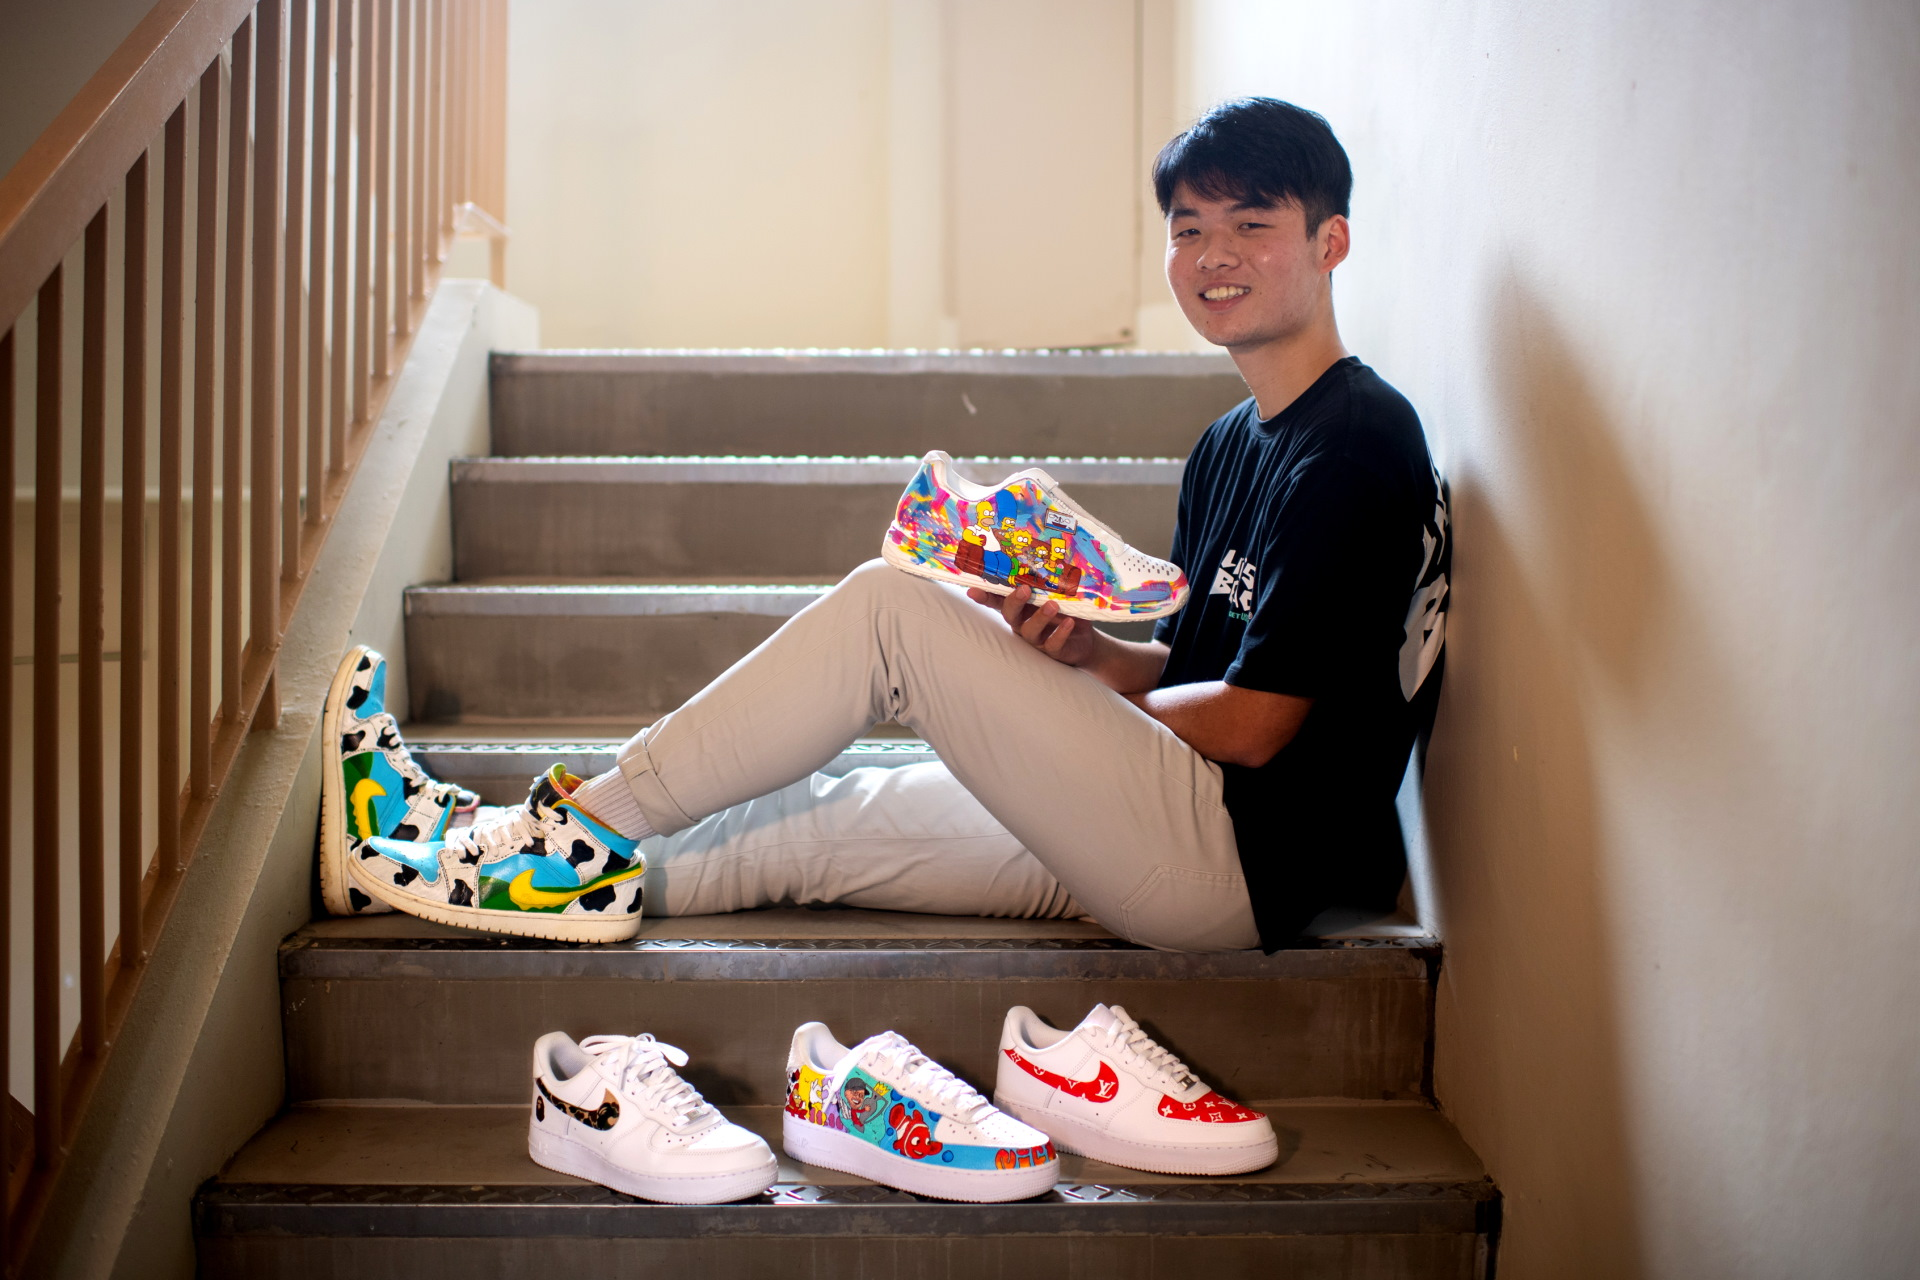 Self-Taught Sneaker Artist Turns Hobby Into Successful Home Business